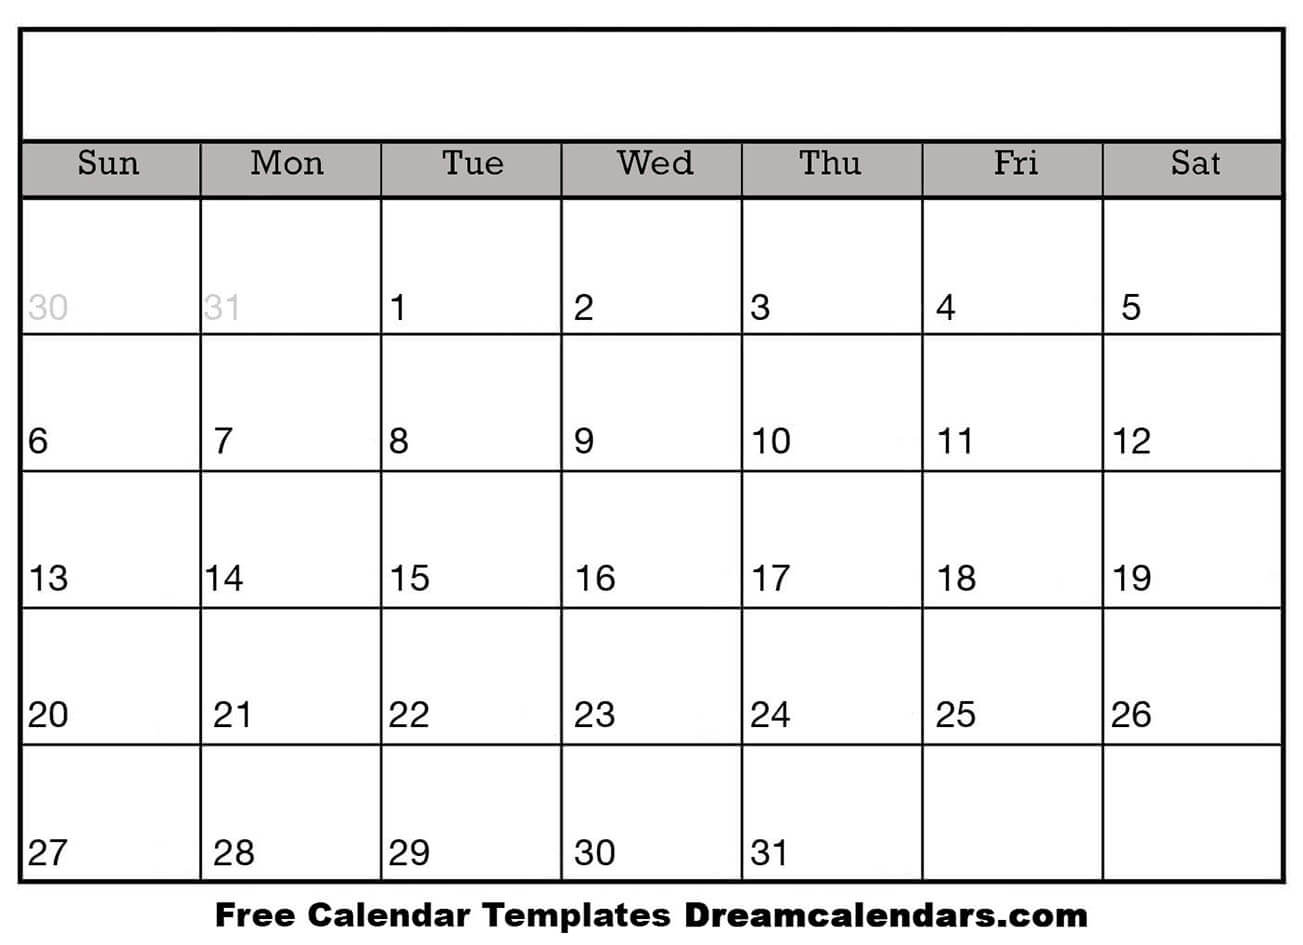 Ko-Fi - Blank Printable Calendar Templates - Ko-Fi ❤️ Where